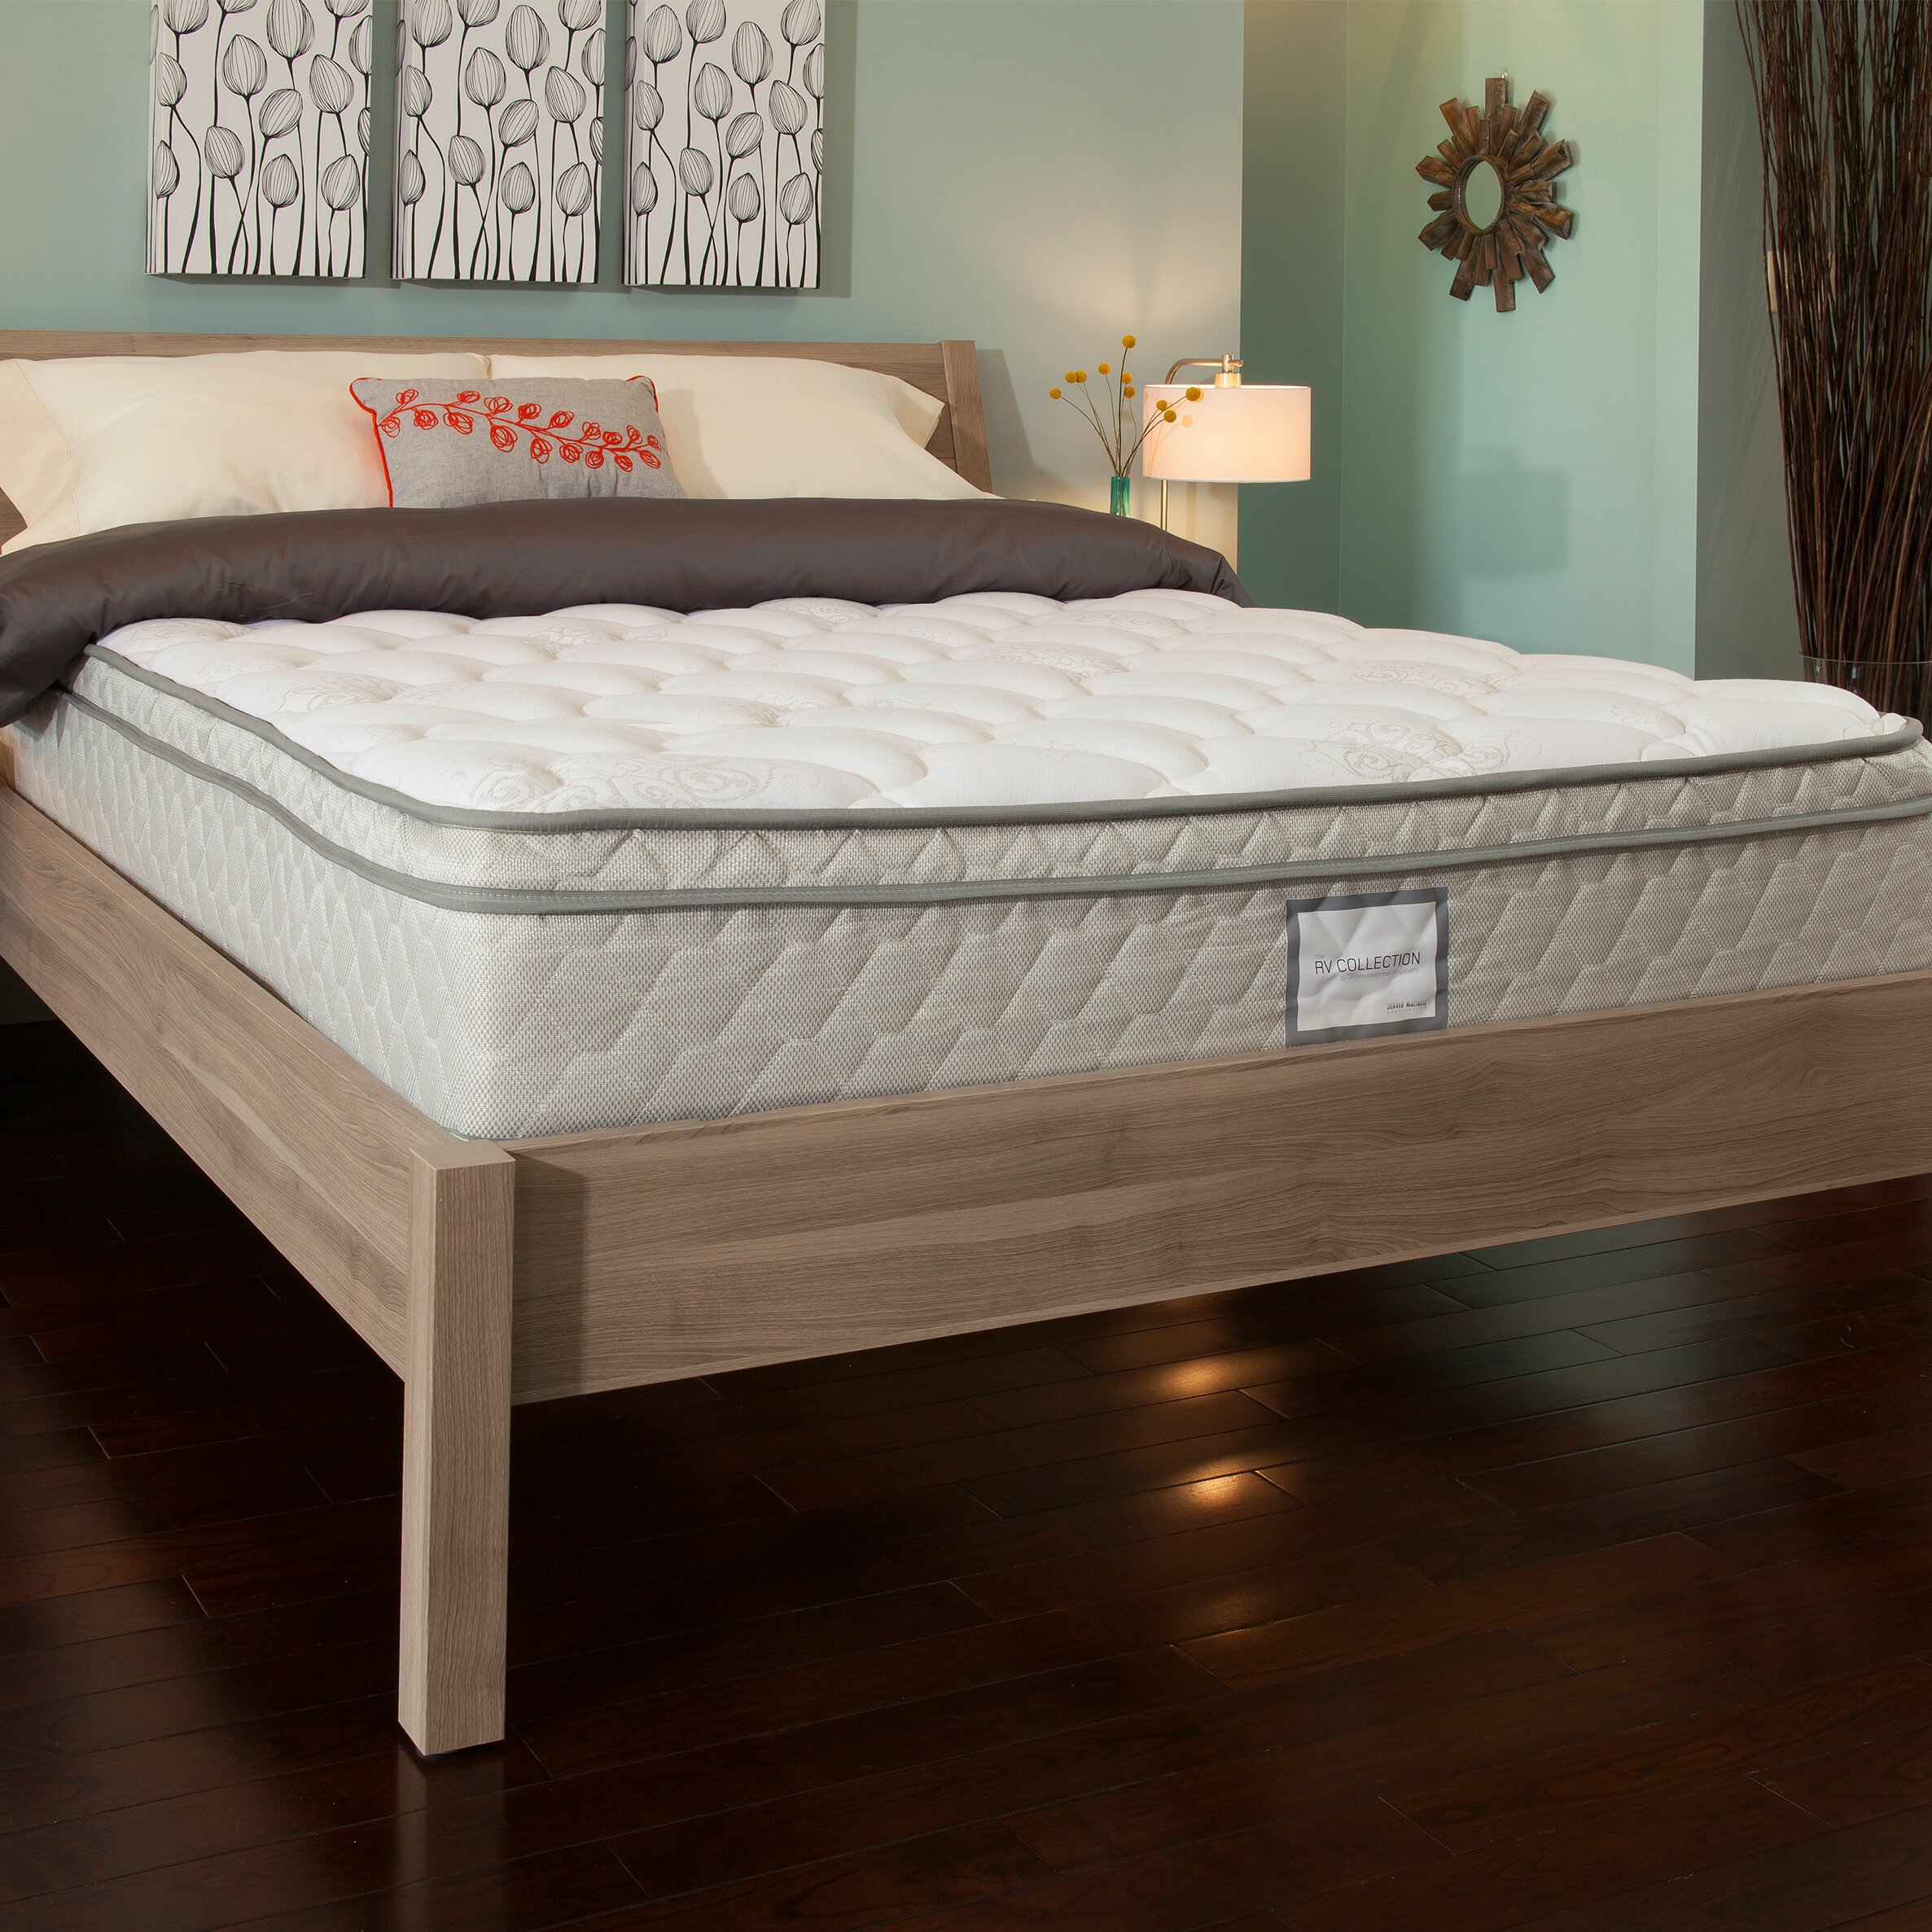 "Denver Mattress Supreme Euro Top 11"" Ultra plush High"